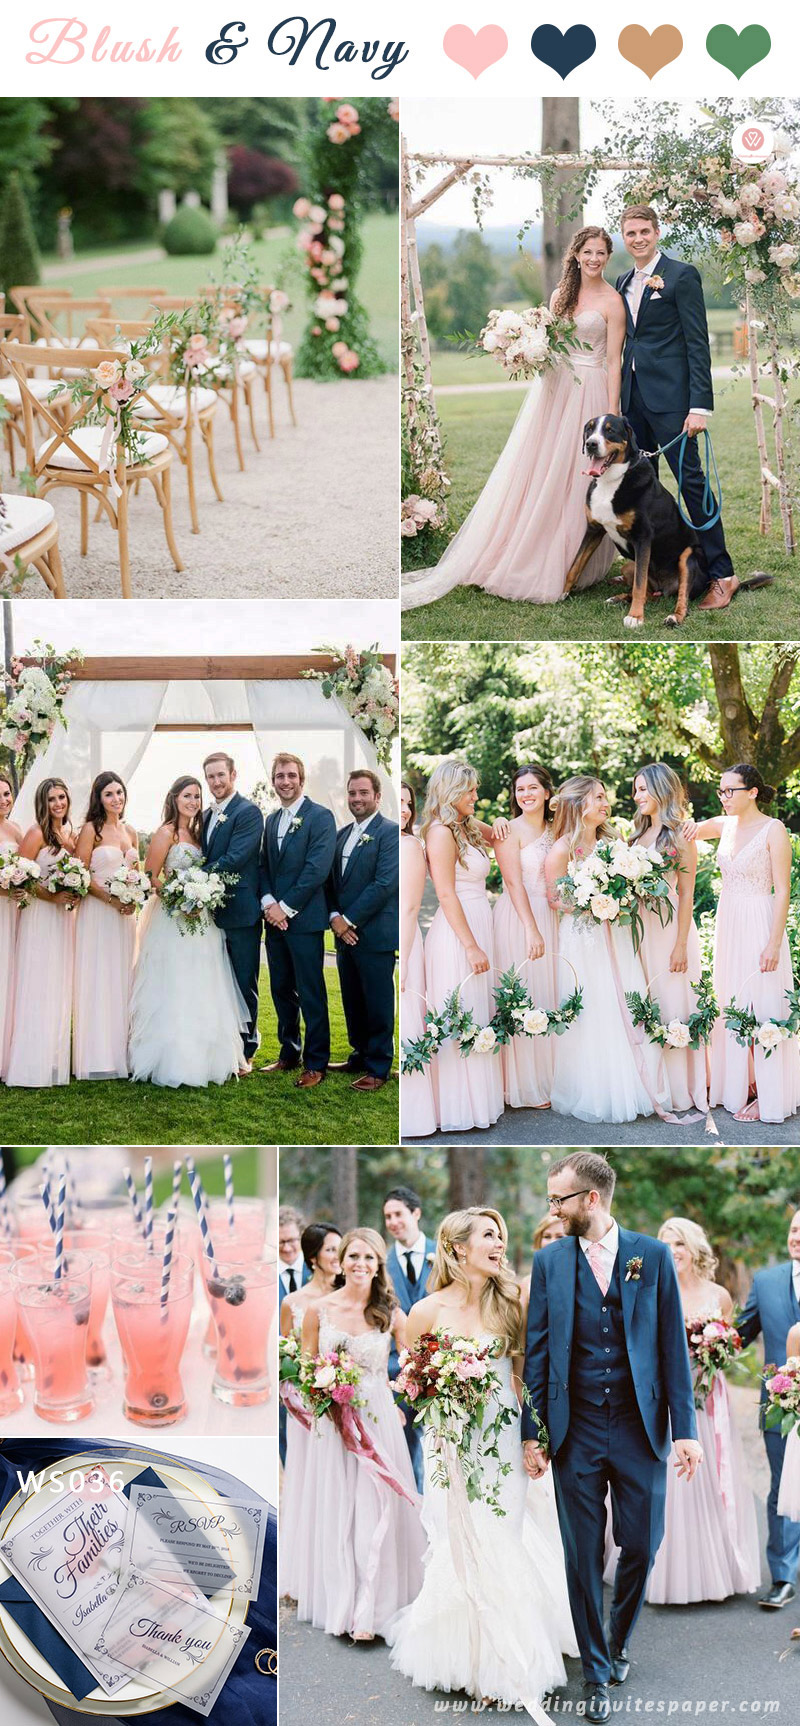 Blush-&-Navy-,-Spring-Weddings.jpg